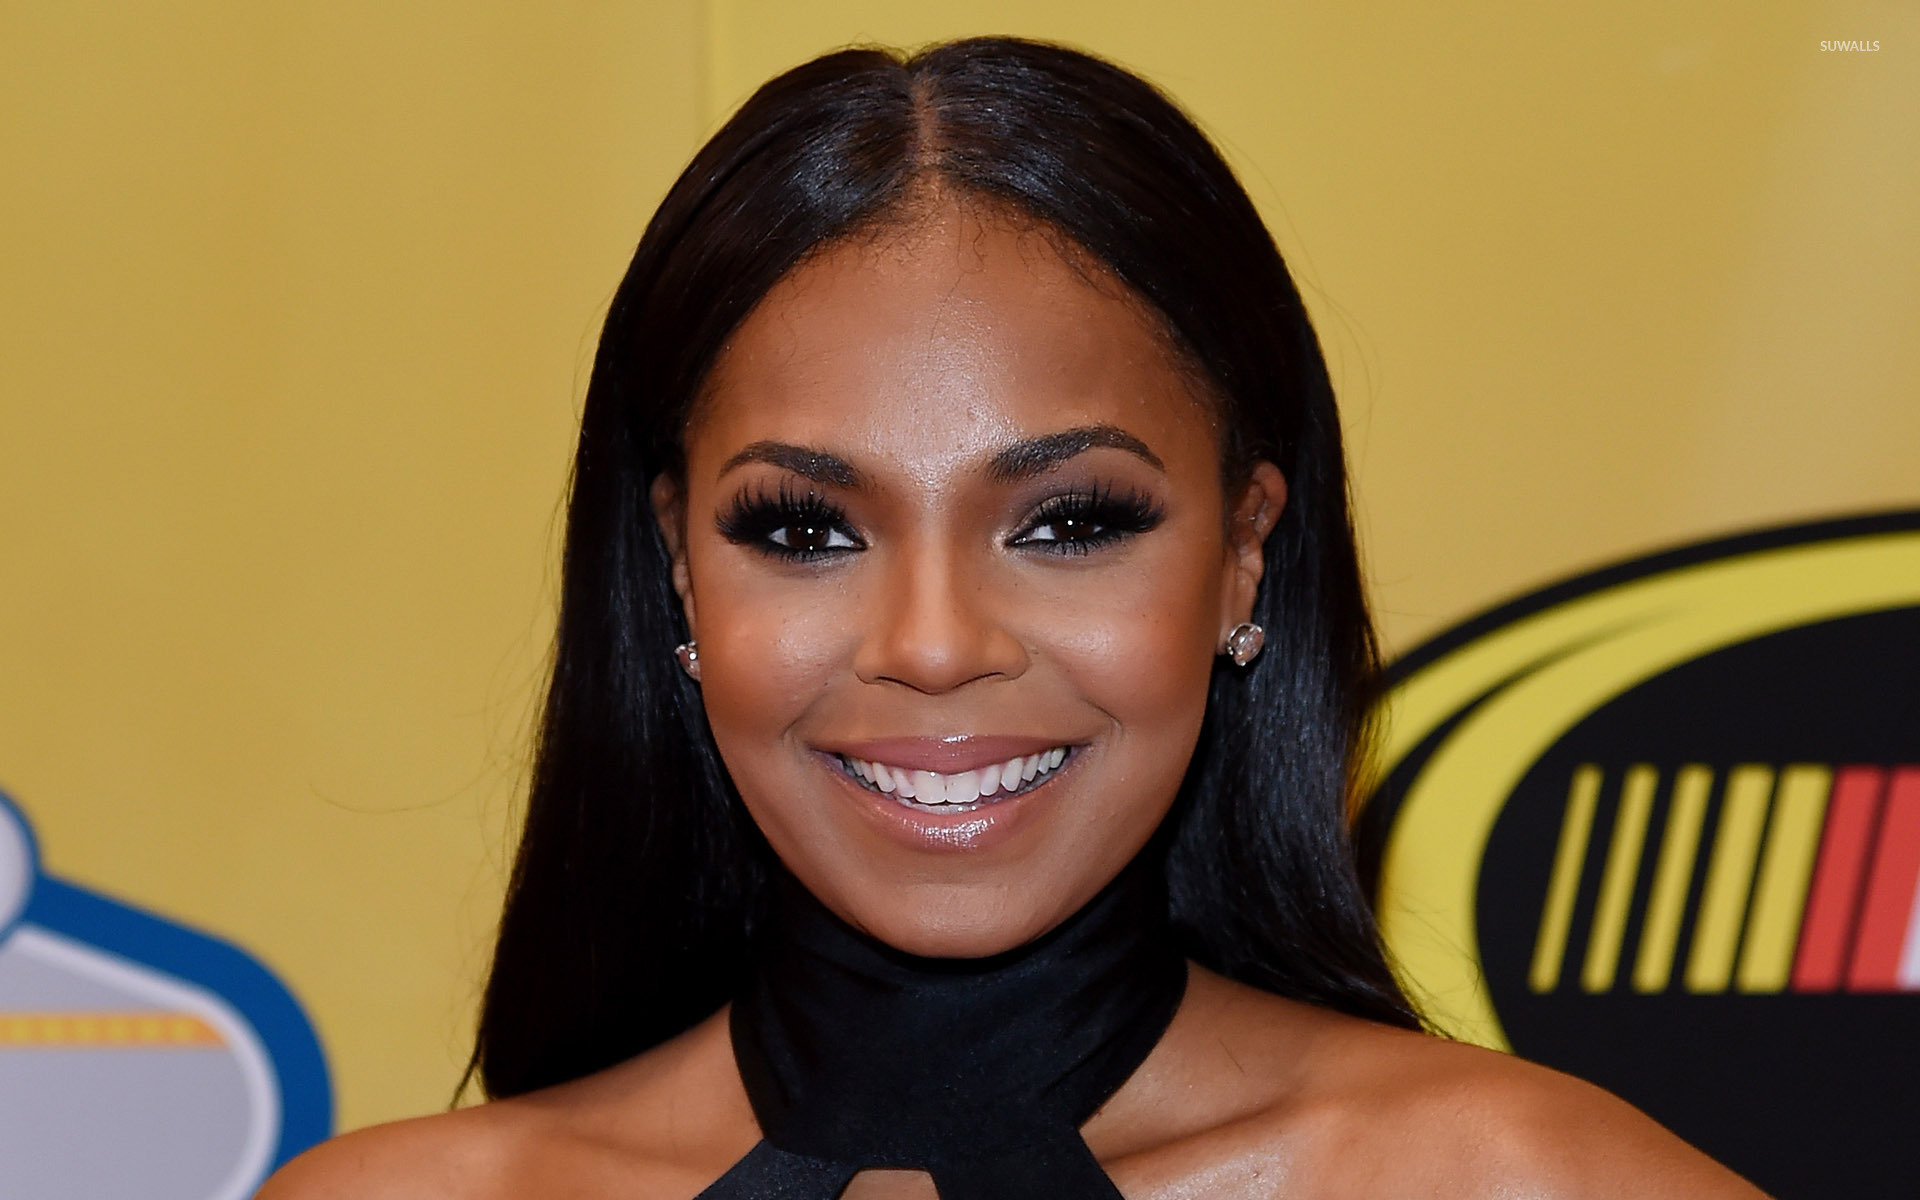 Celebrites Ashanti Celebritesy nude photos 2019